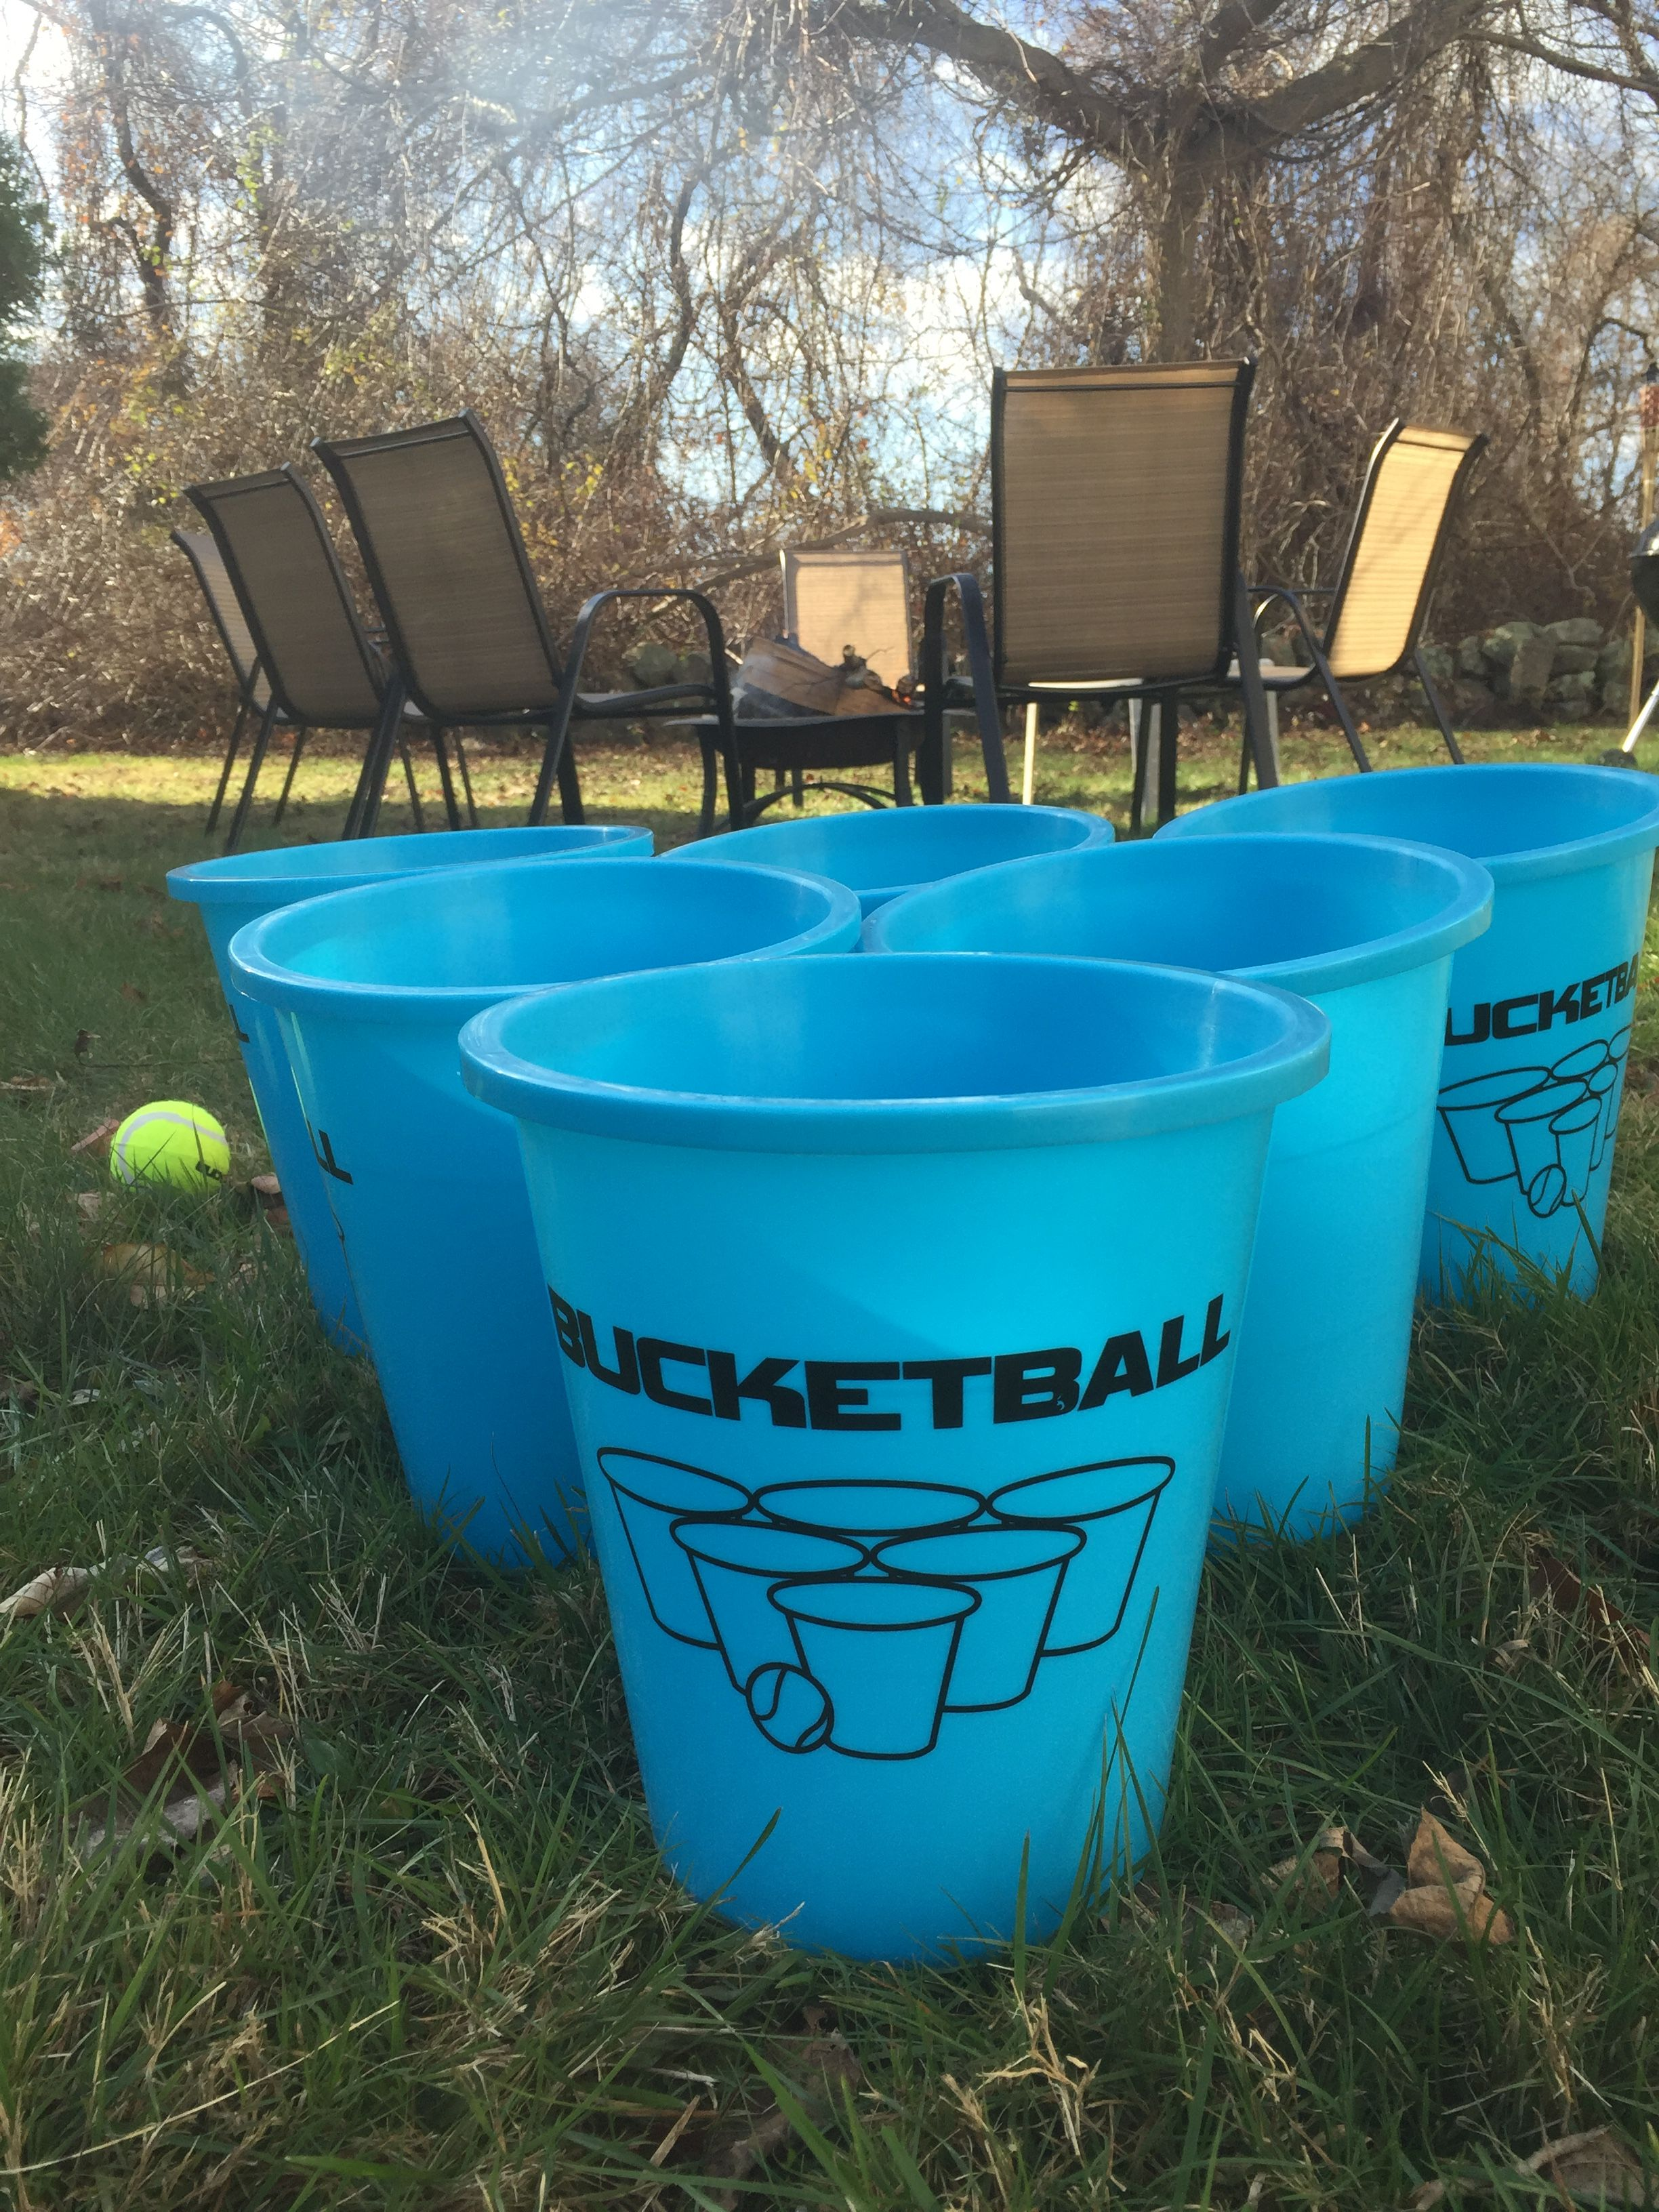 bucketballa by the fire pit a great game to play in your backyard